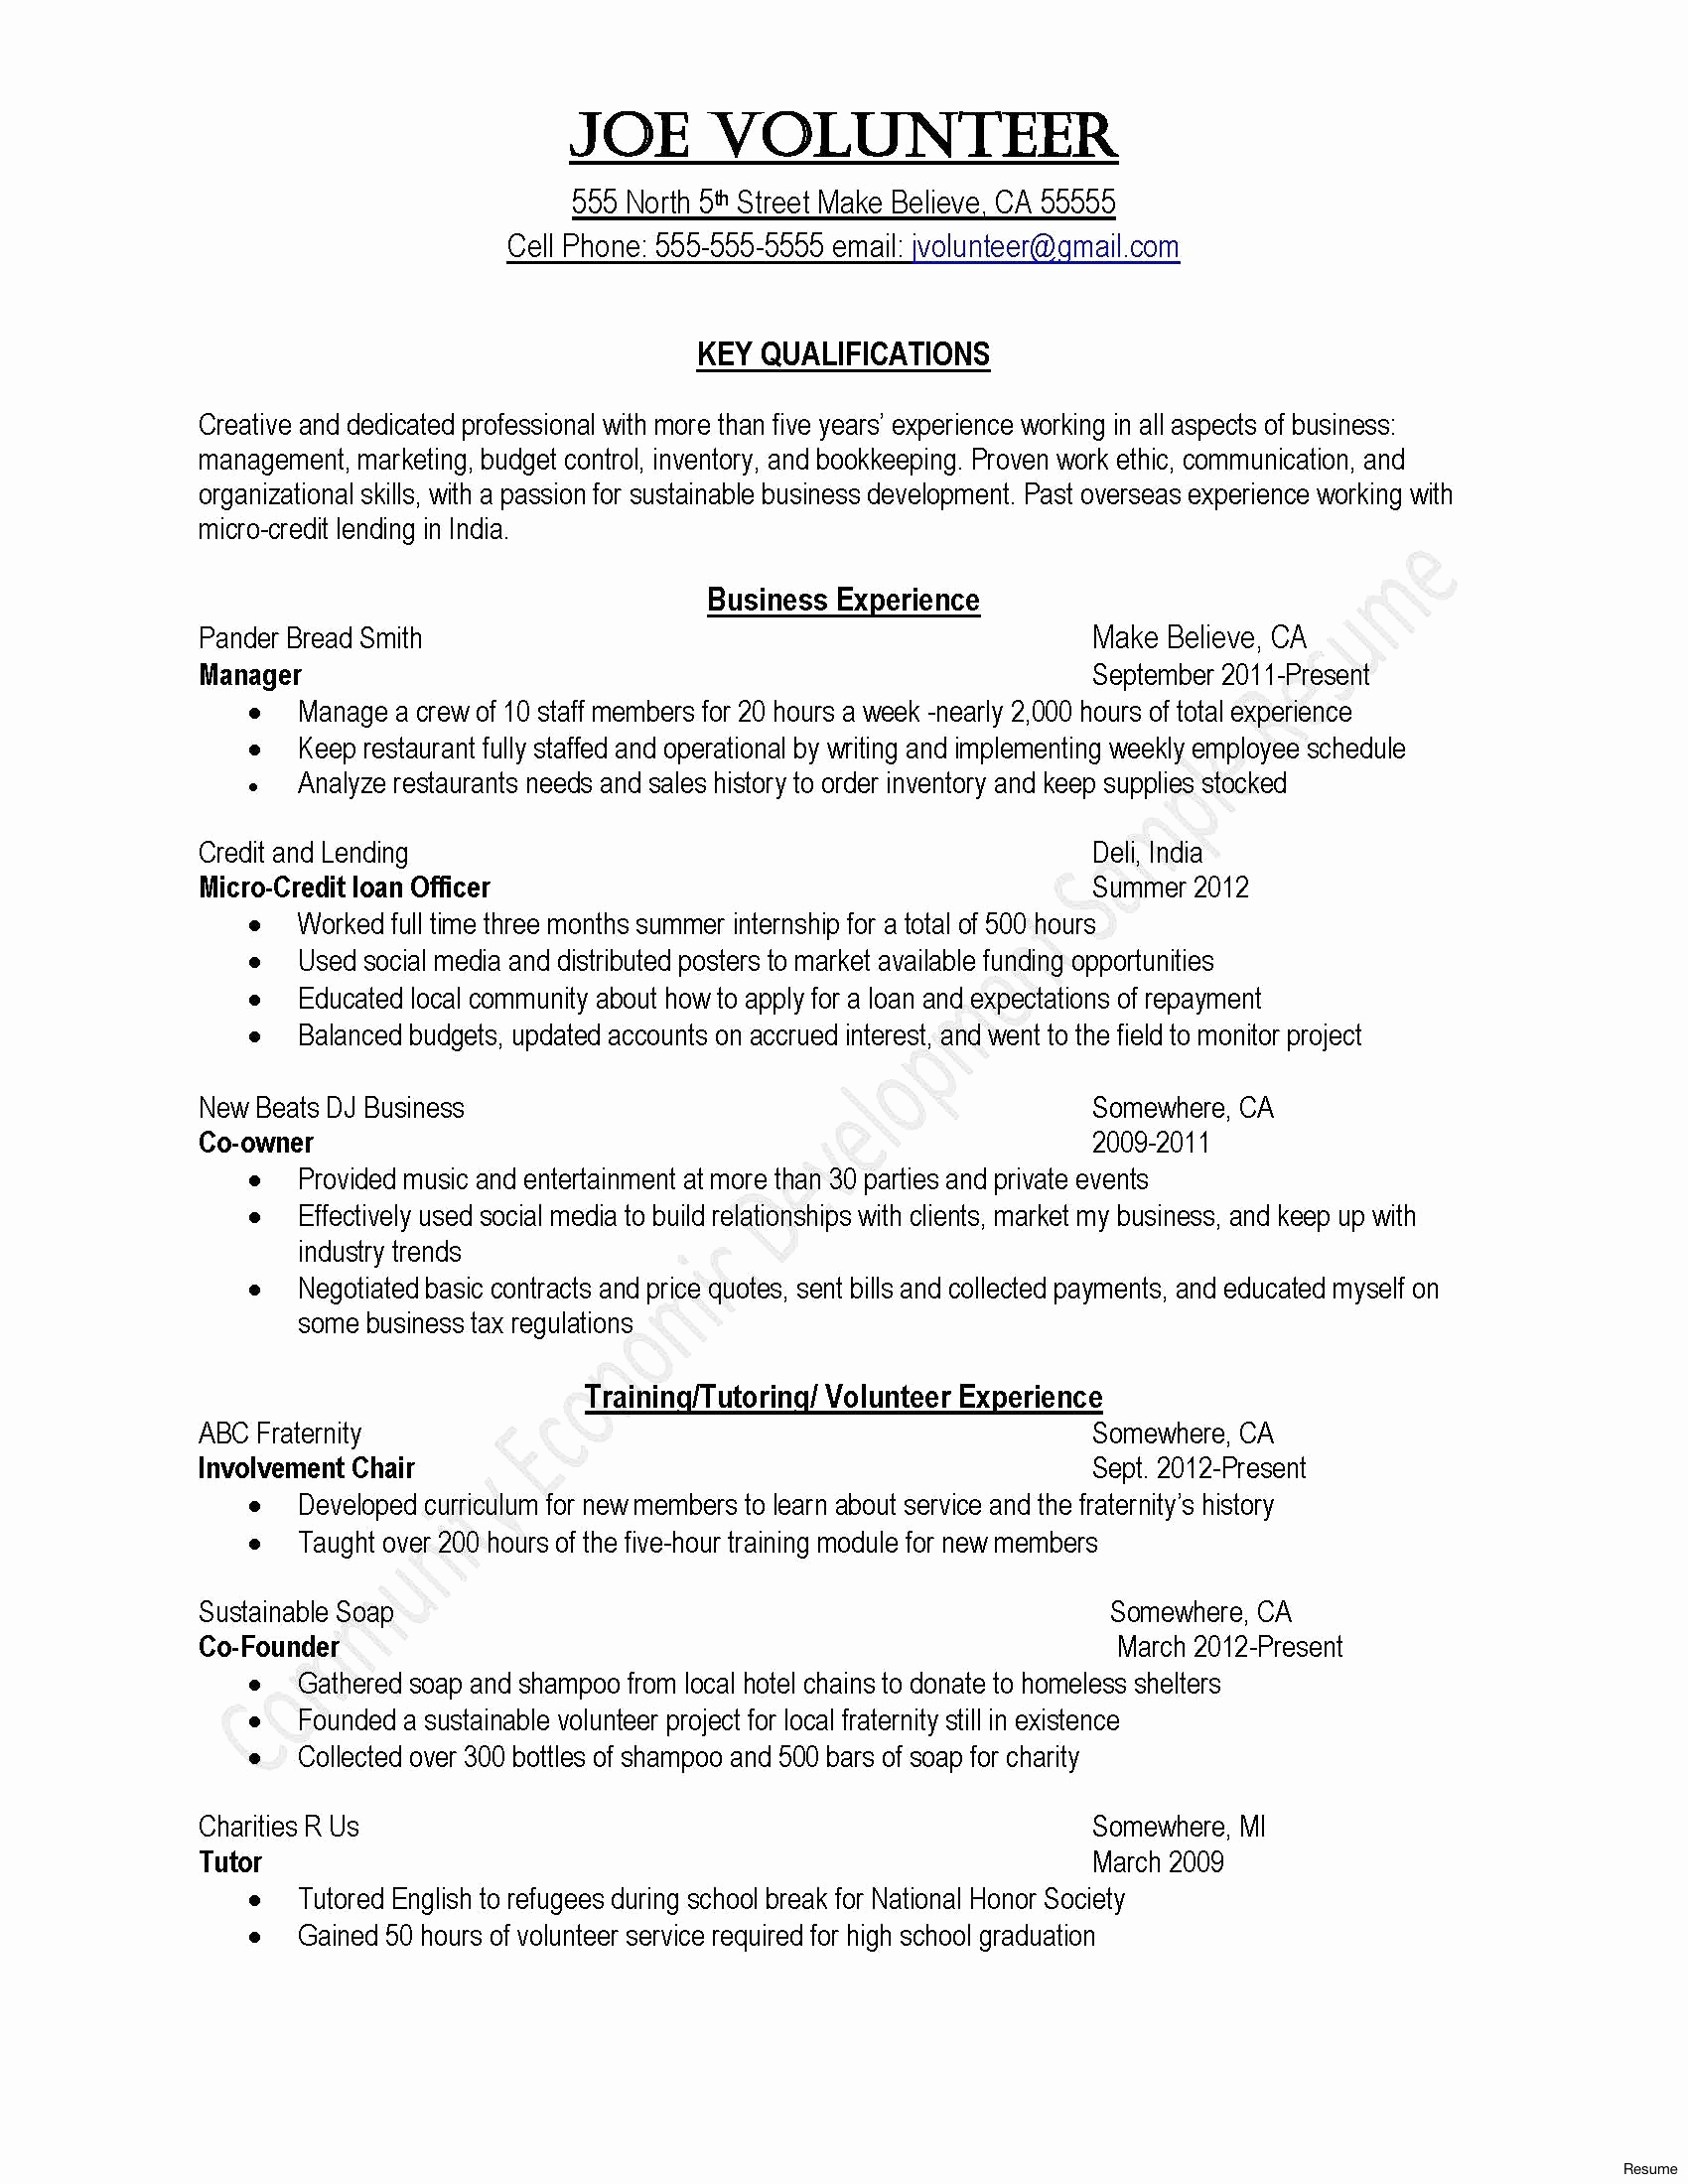 Resume social Media Skills - Exclusive Marketing Agreement Template Free Lovely Resume Puter